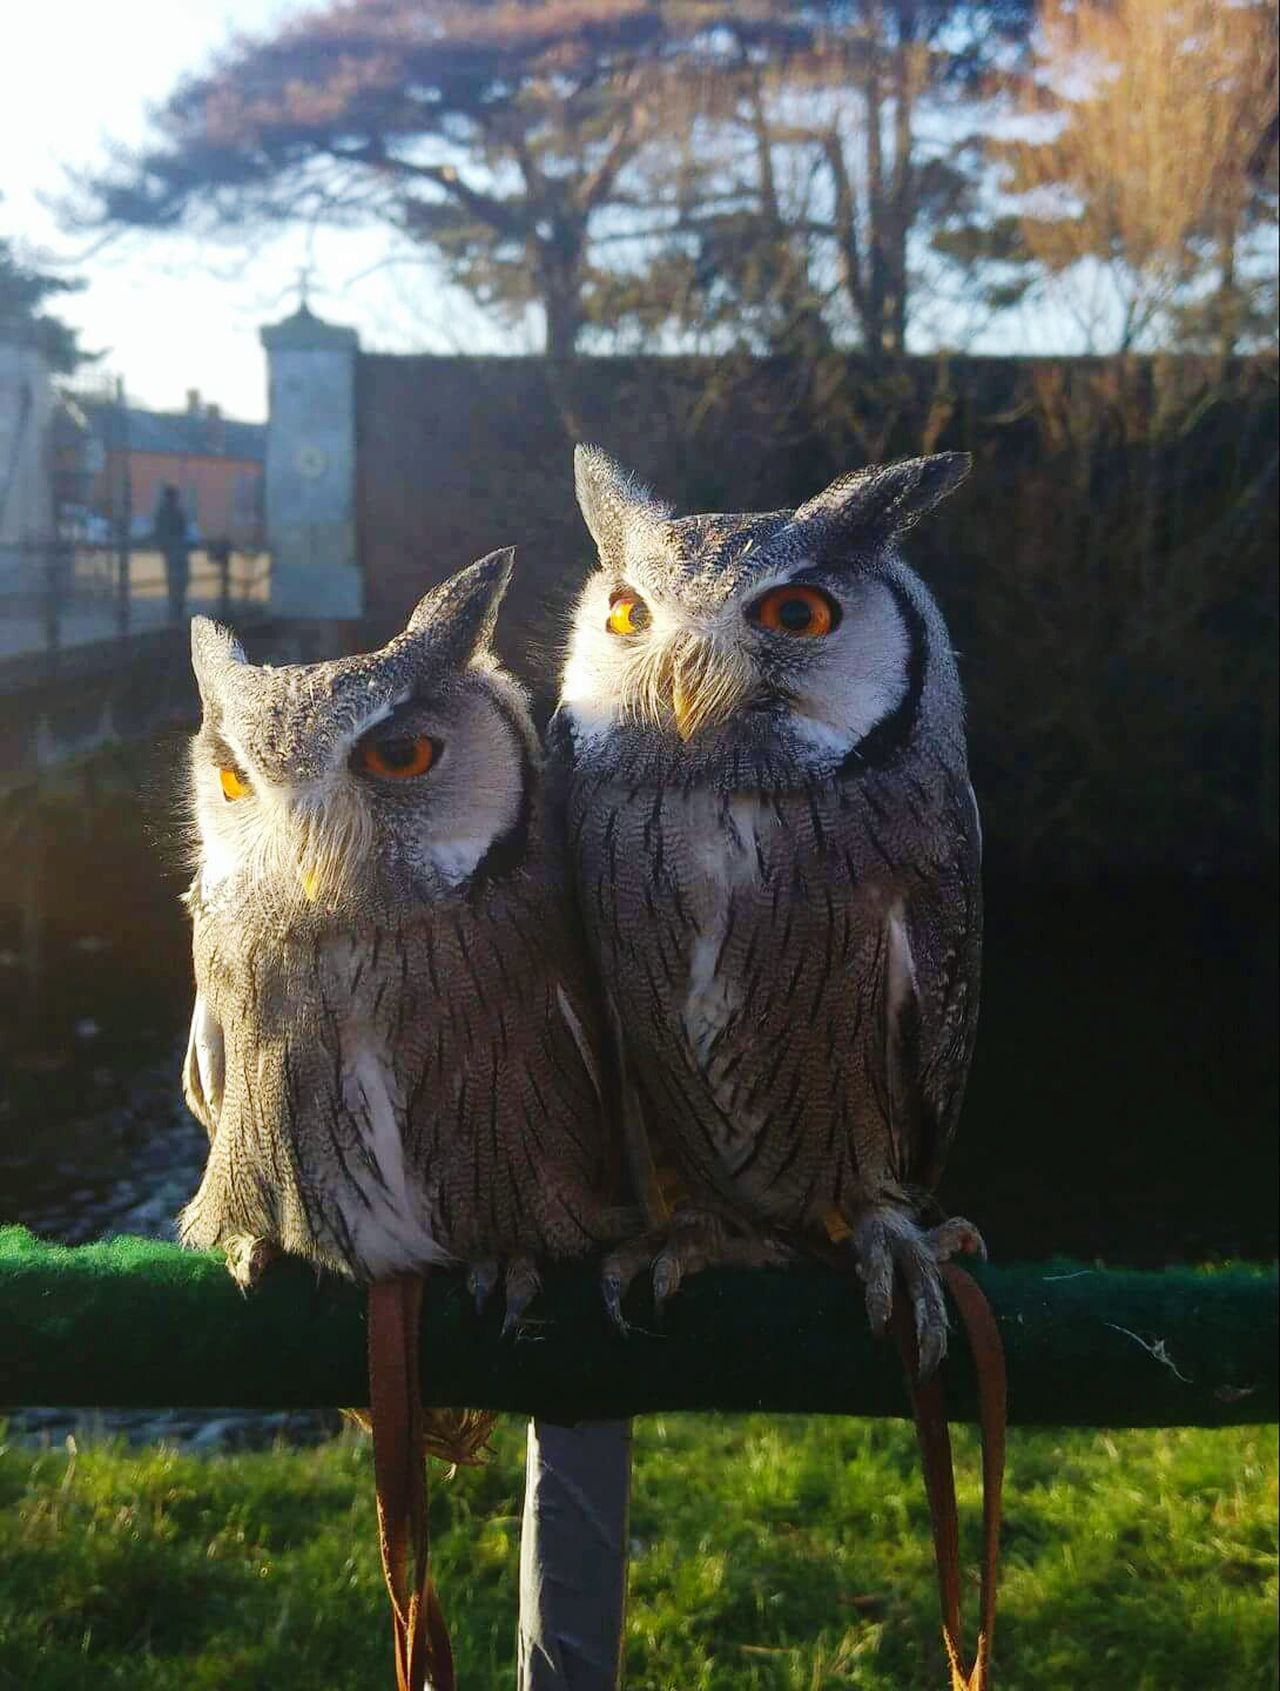 Owls Birds Of Prey Togetherness No People Animal Themes Sunlight Outdoors Day Owl Eyes Owl Photography Close-up Beautiful